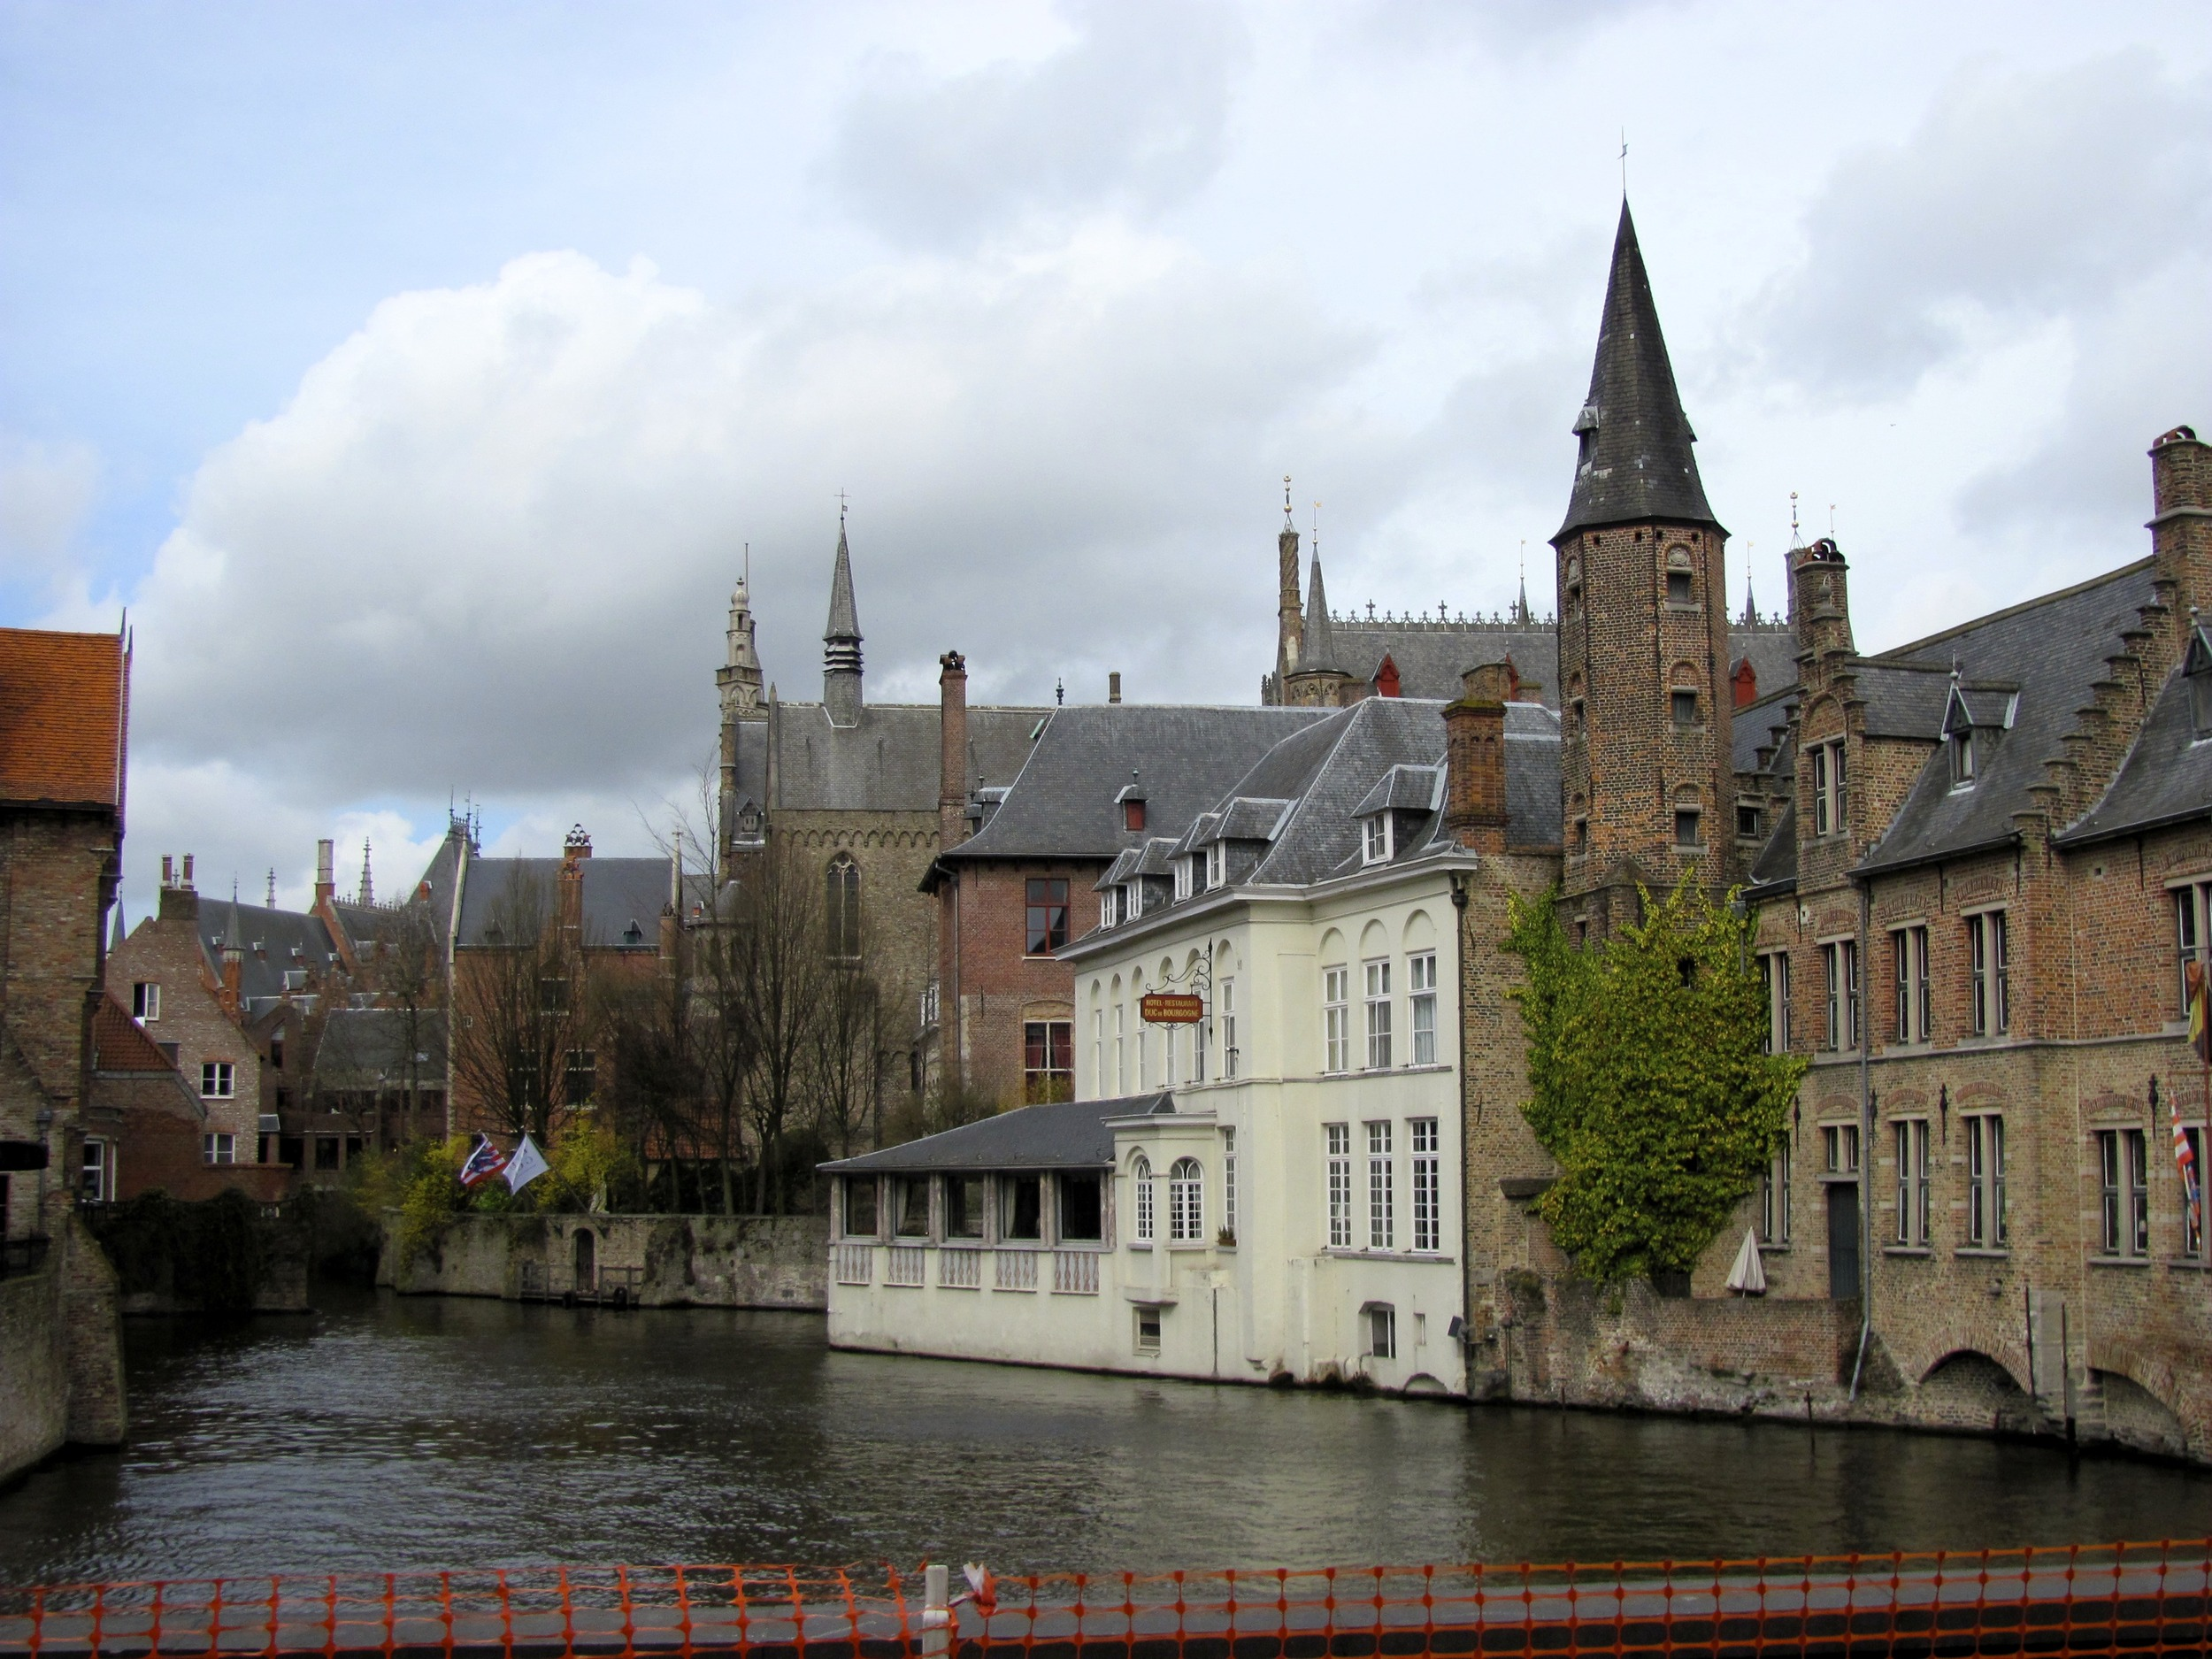 Canal view, Bruges, Belgium, VHS 2010